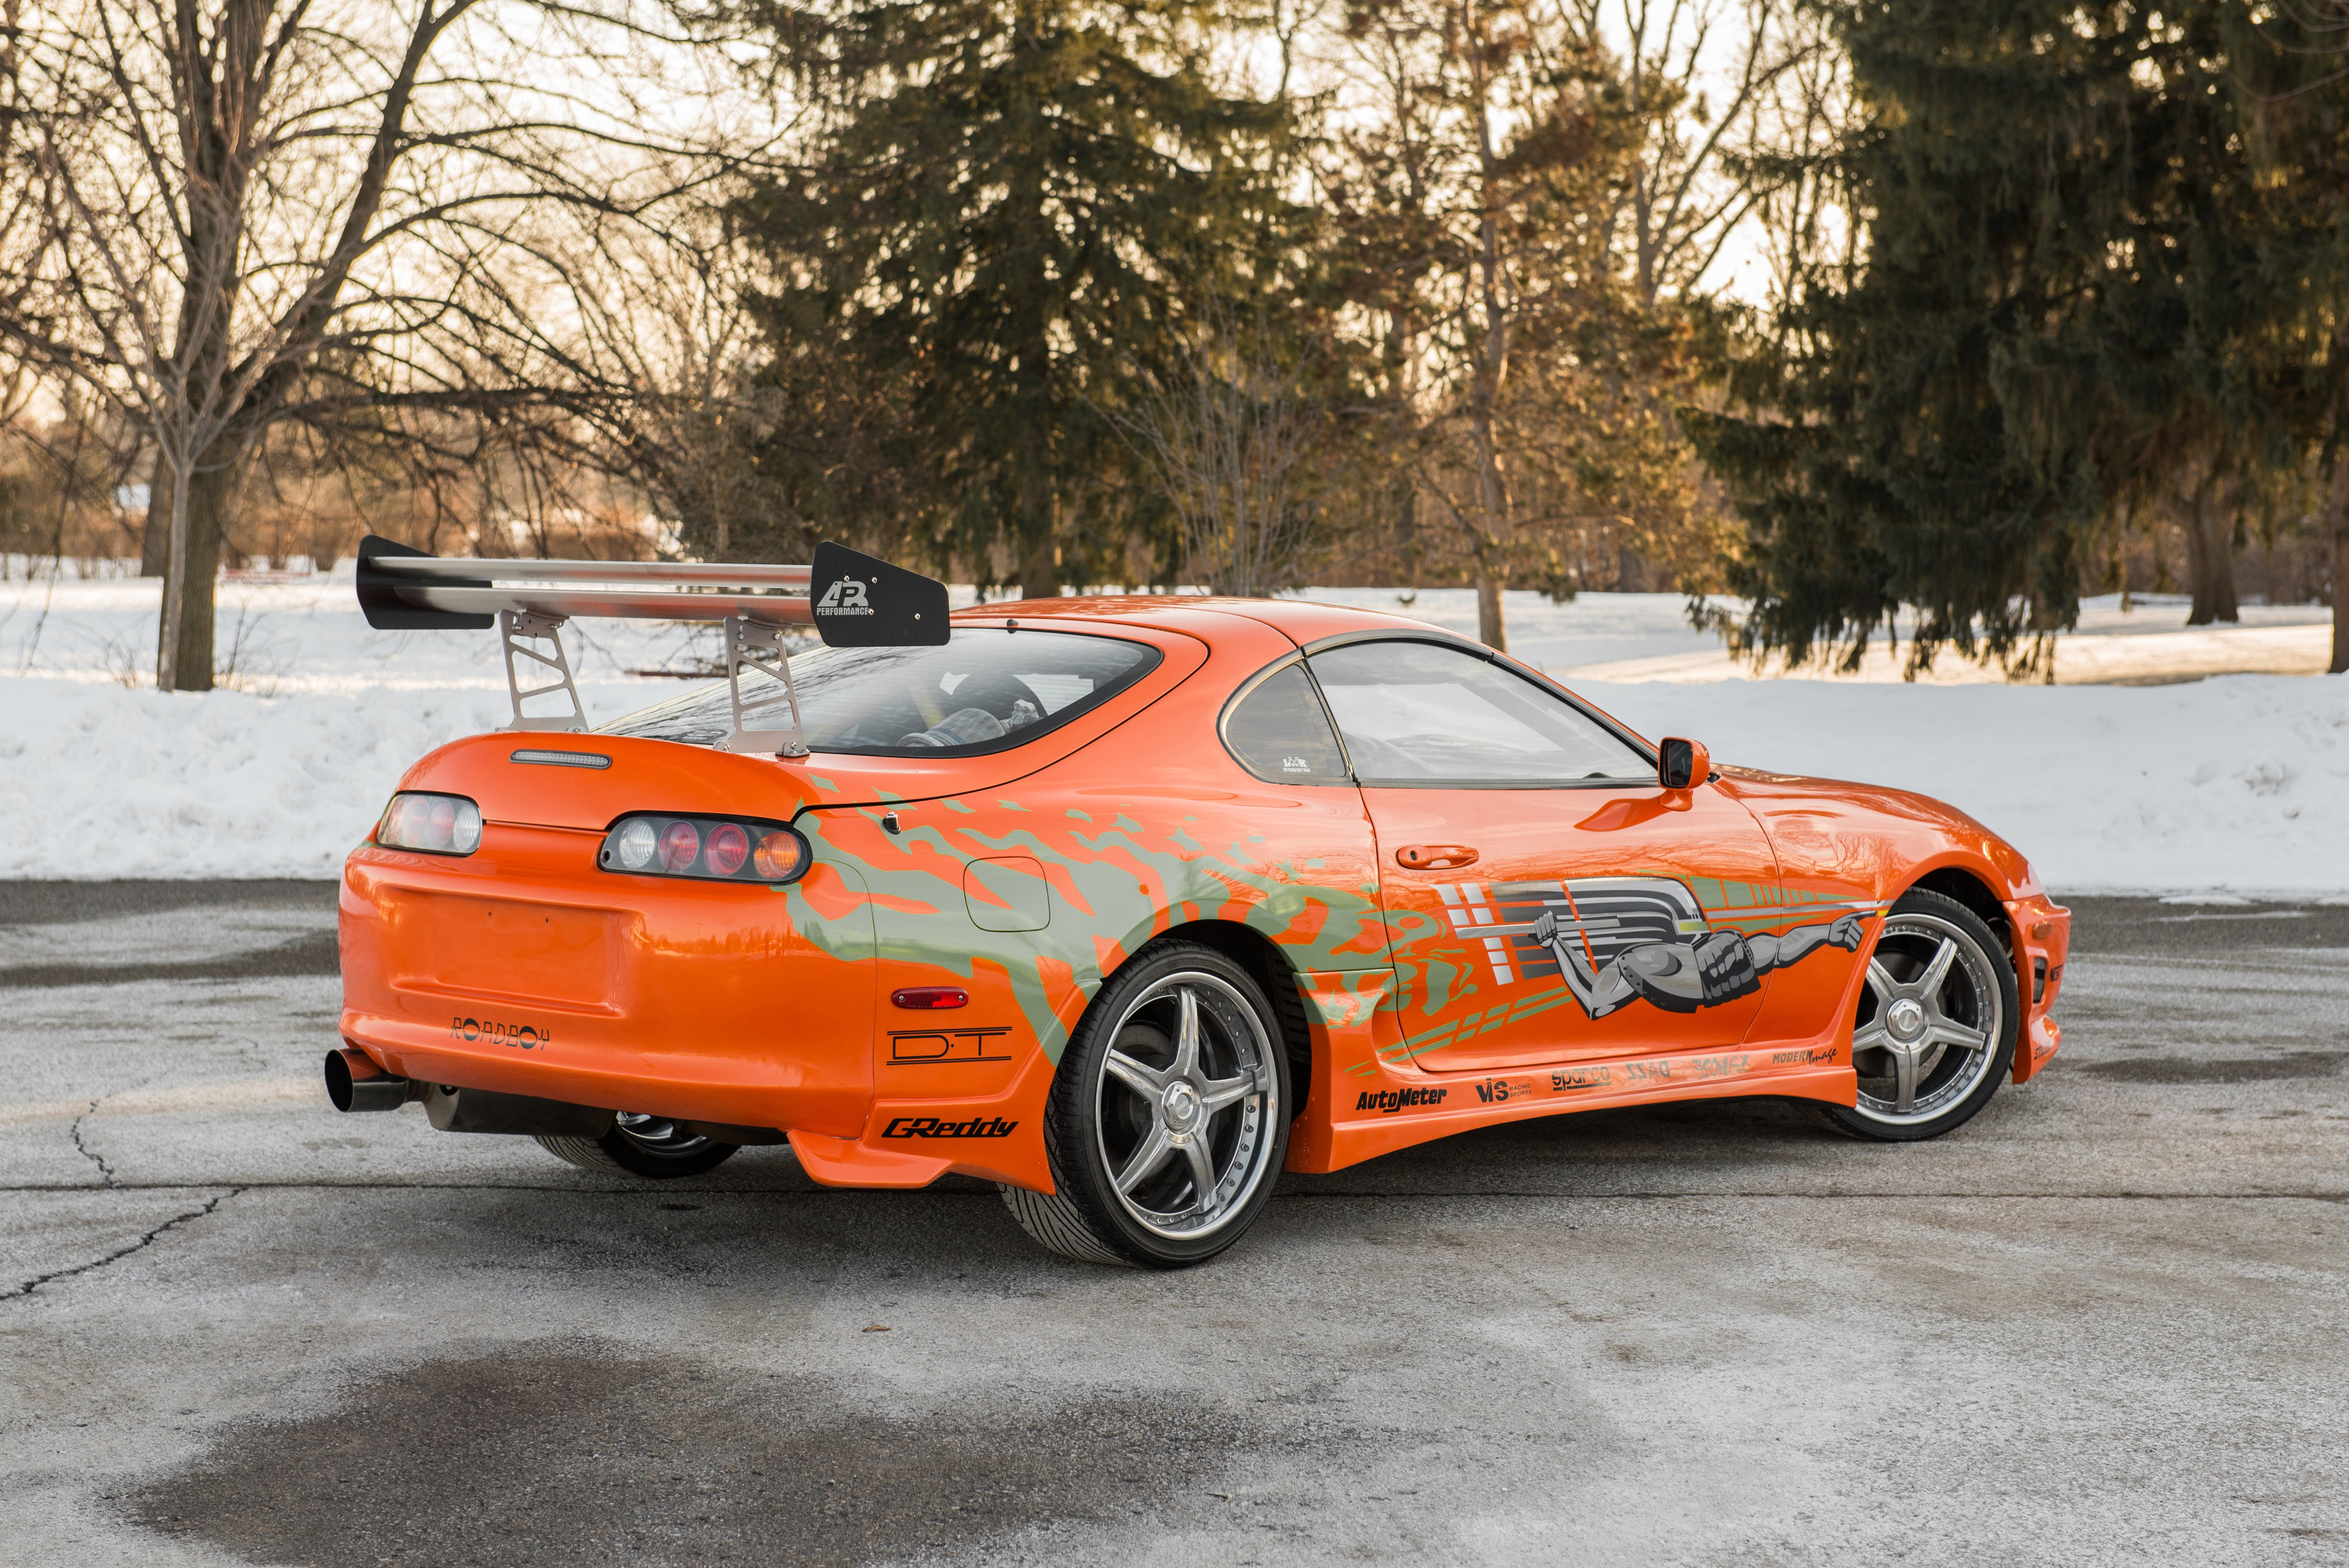 Toyota Supra The Fast and the Furious - 3720.6KB